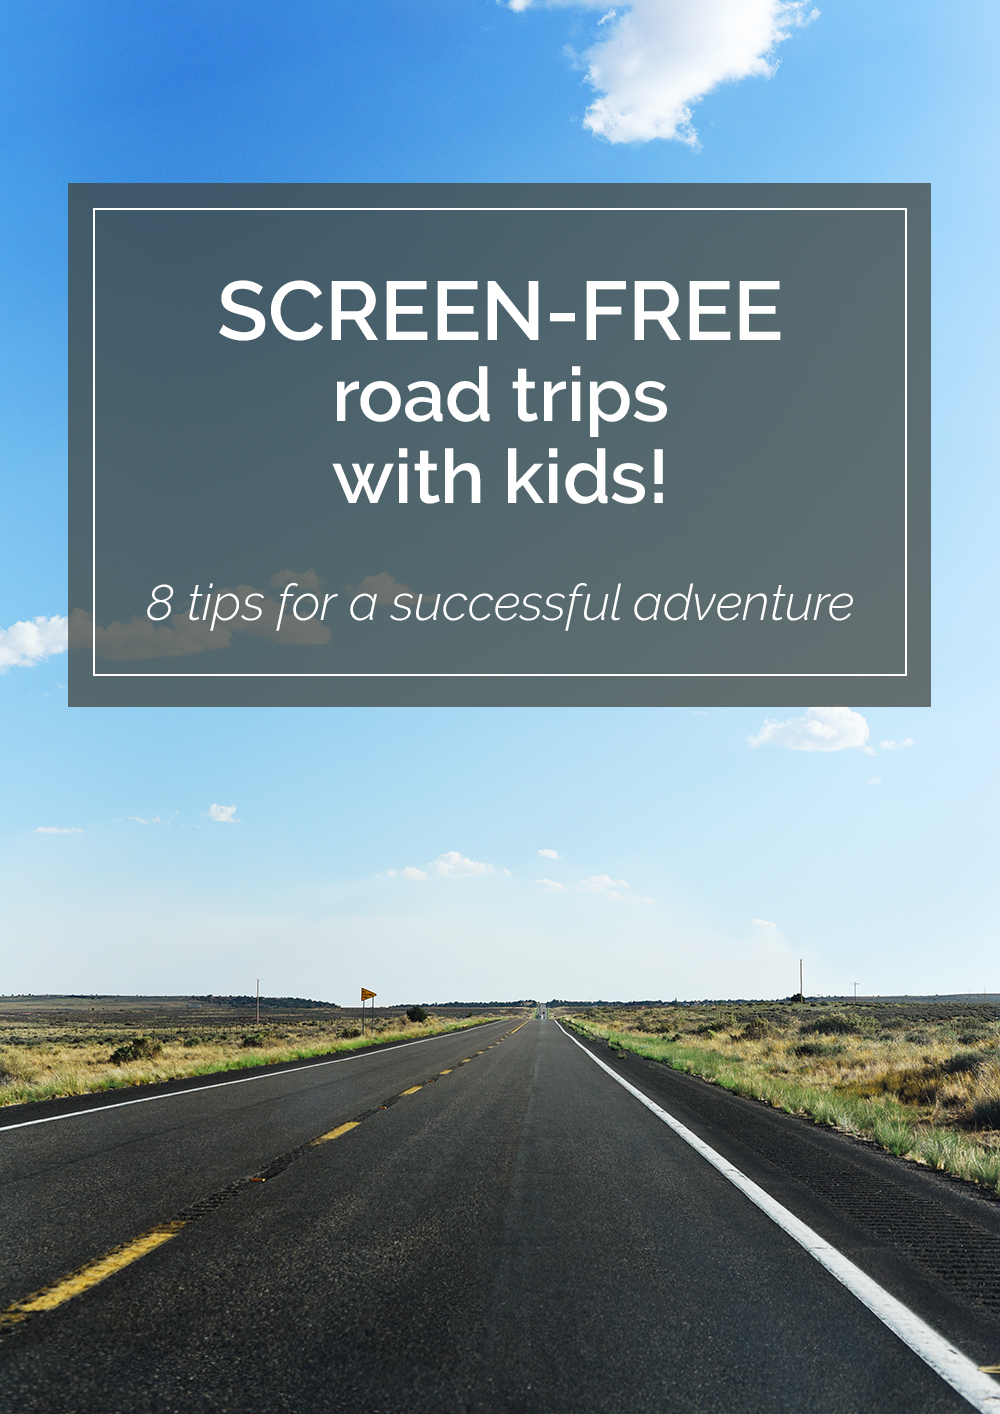 8 tips for a successful screen-free road trip with kids. It can be done AND it can be fun!